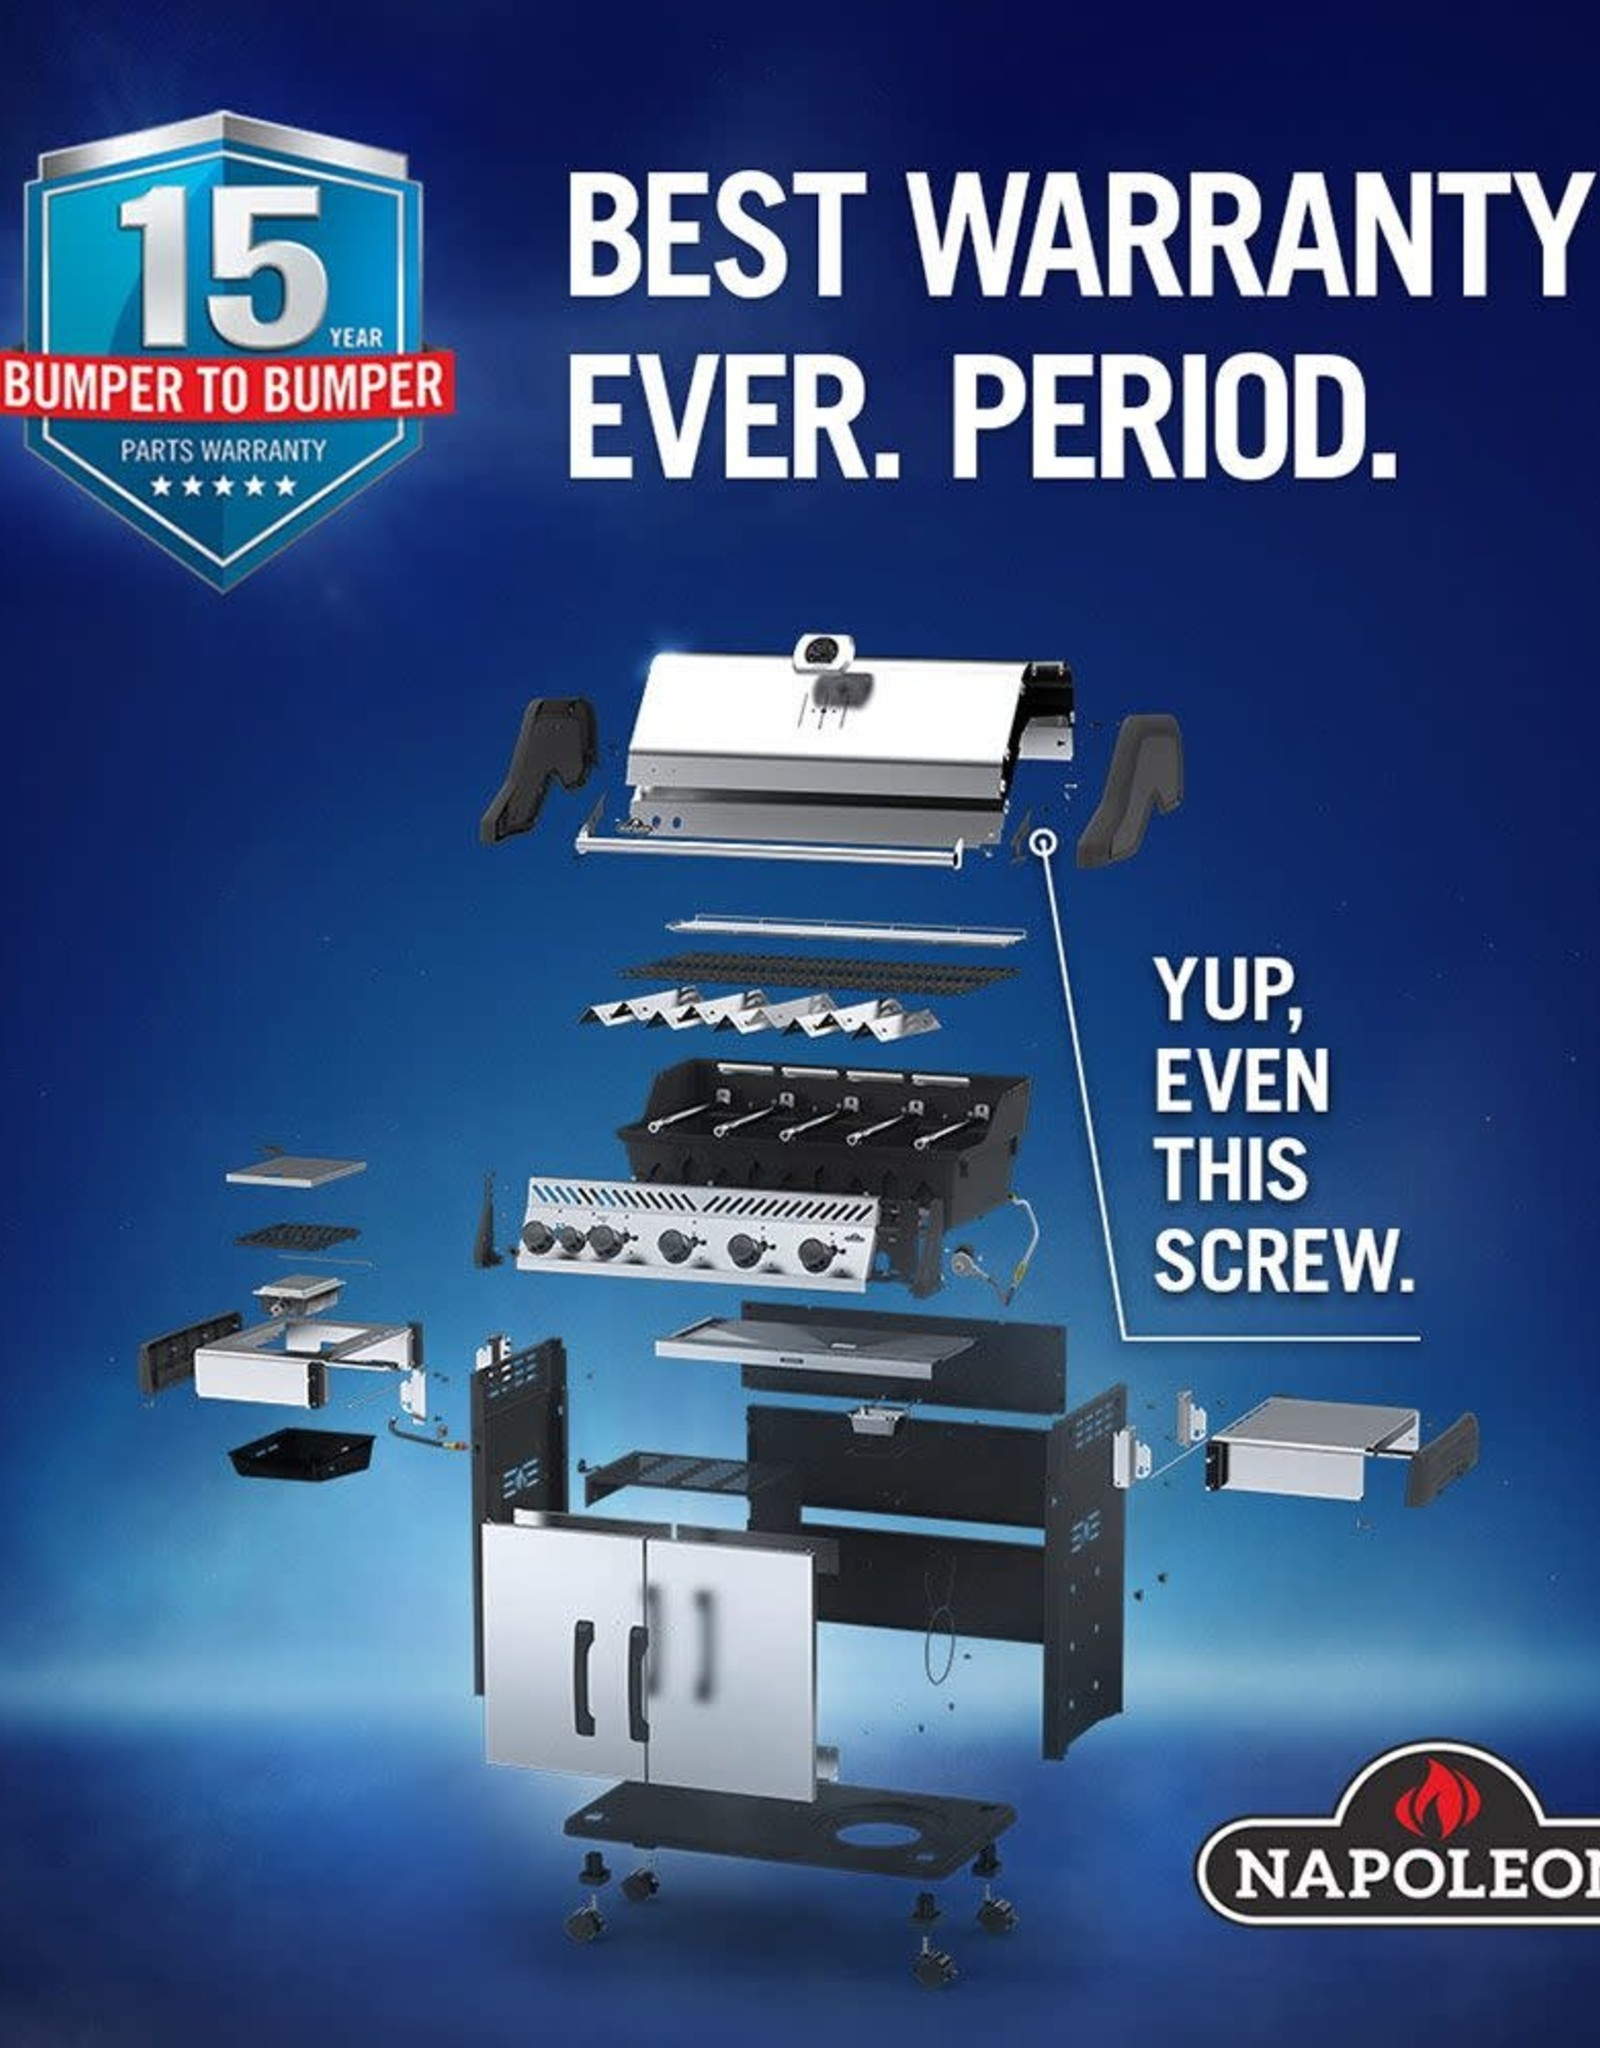 Napoleon Napoleon Prestige PRO 500 Built-in Propane Gas Grill with Infrared Rear Burner and Rotisserie Kit - BIPRO500RBPSS-3